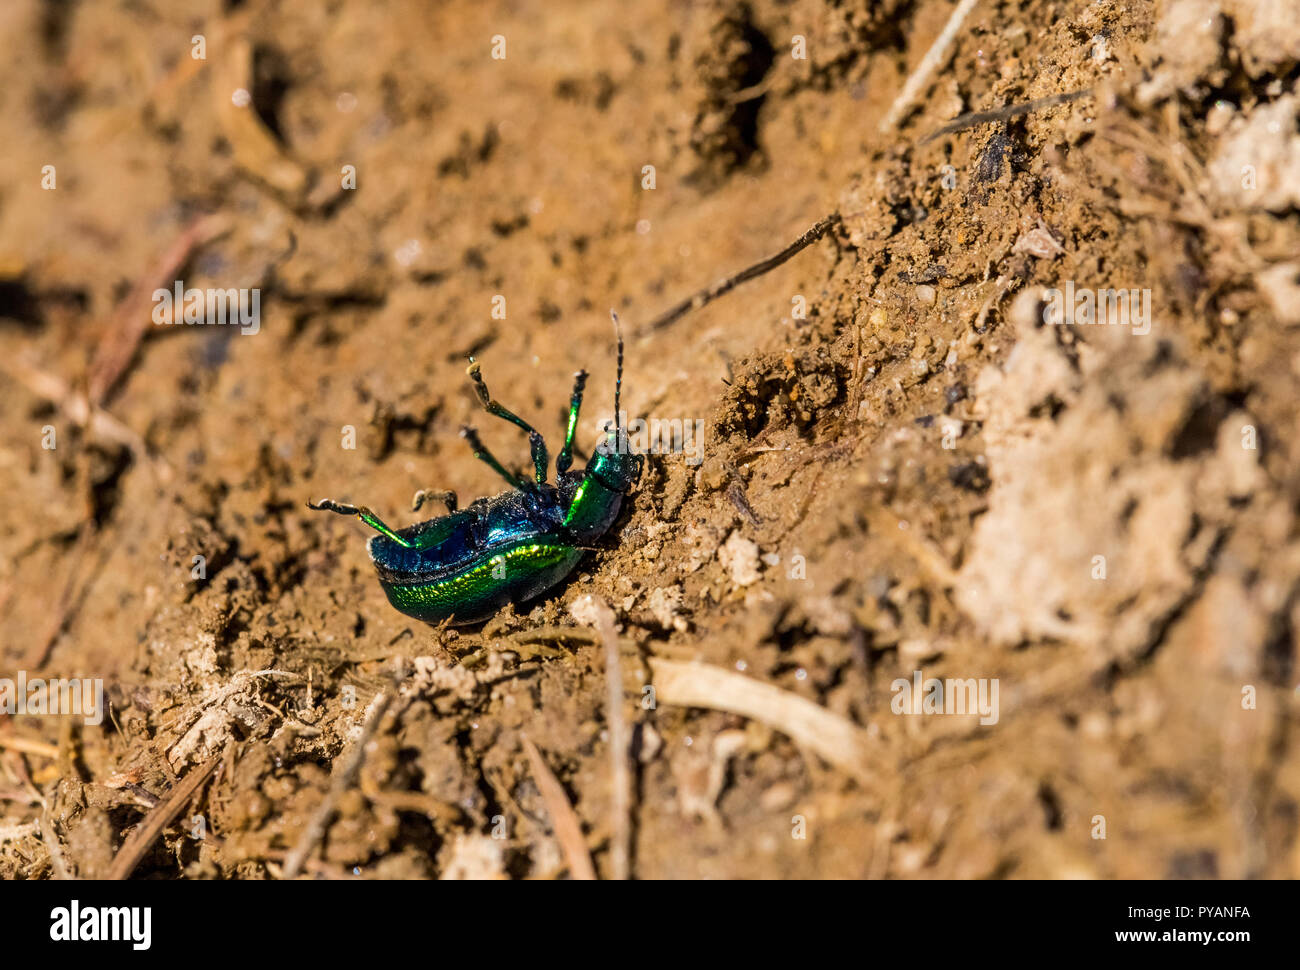 Close up of a green bug turned over. - Stock Image